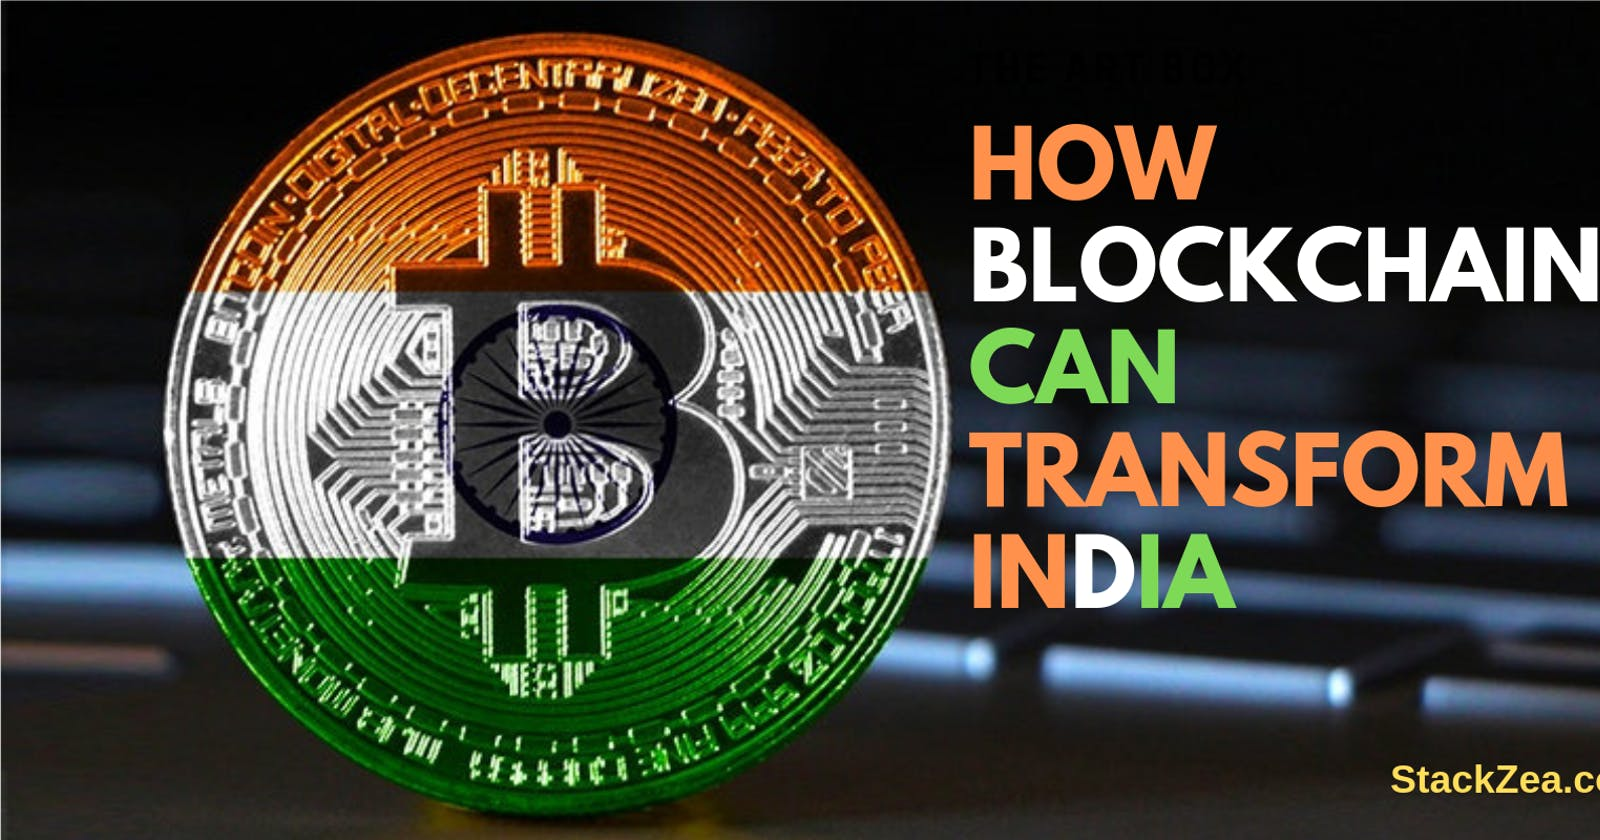 How Blockchain can transform a country like India?